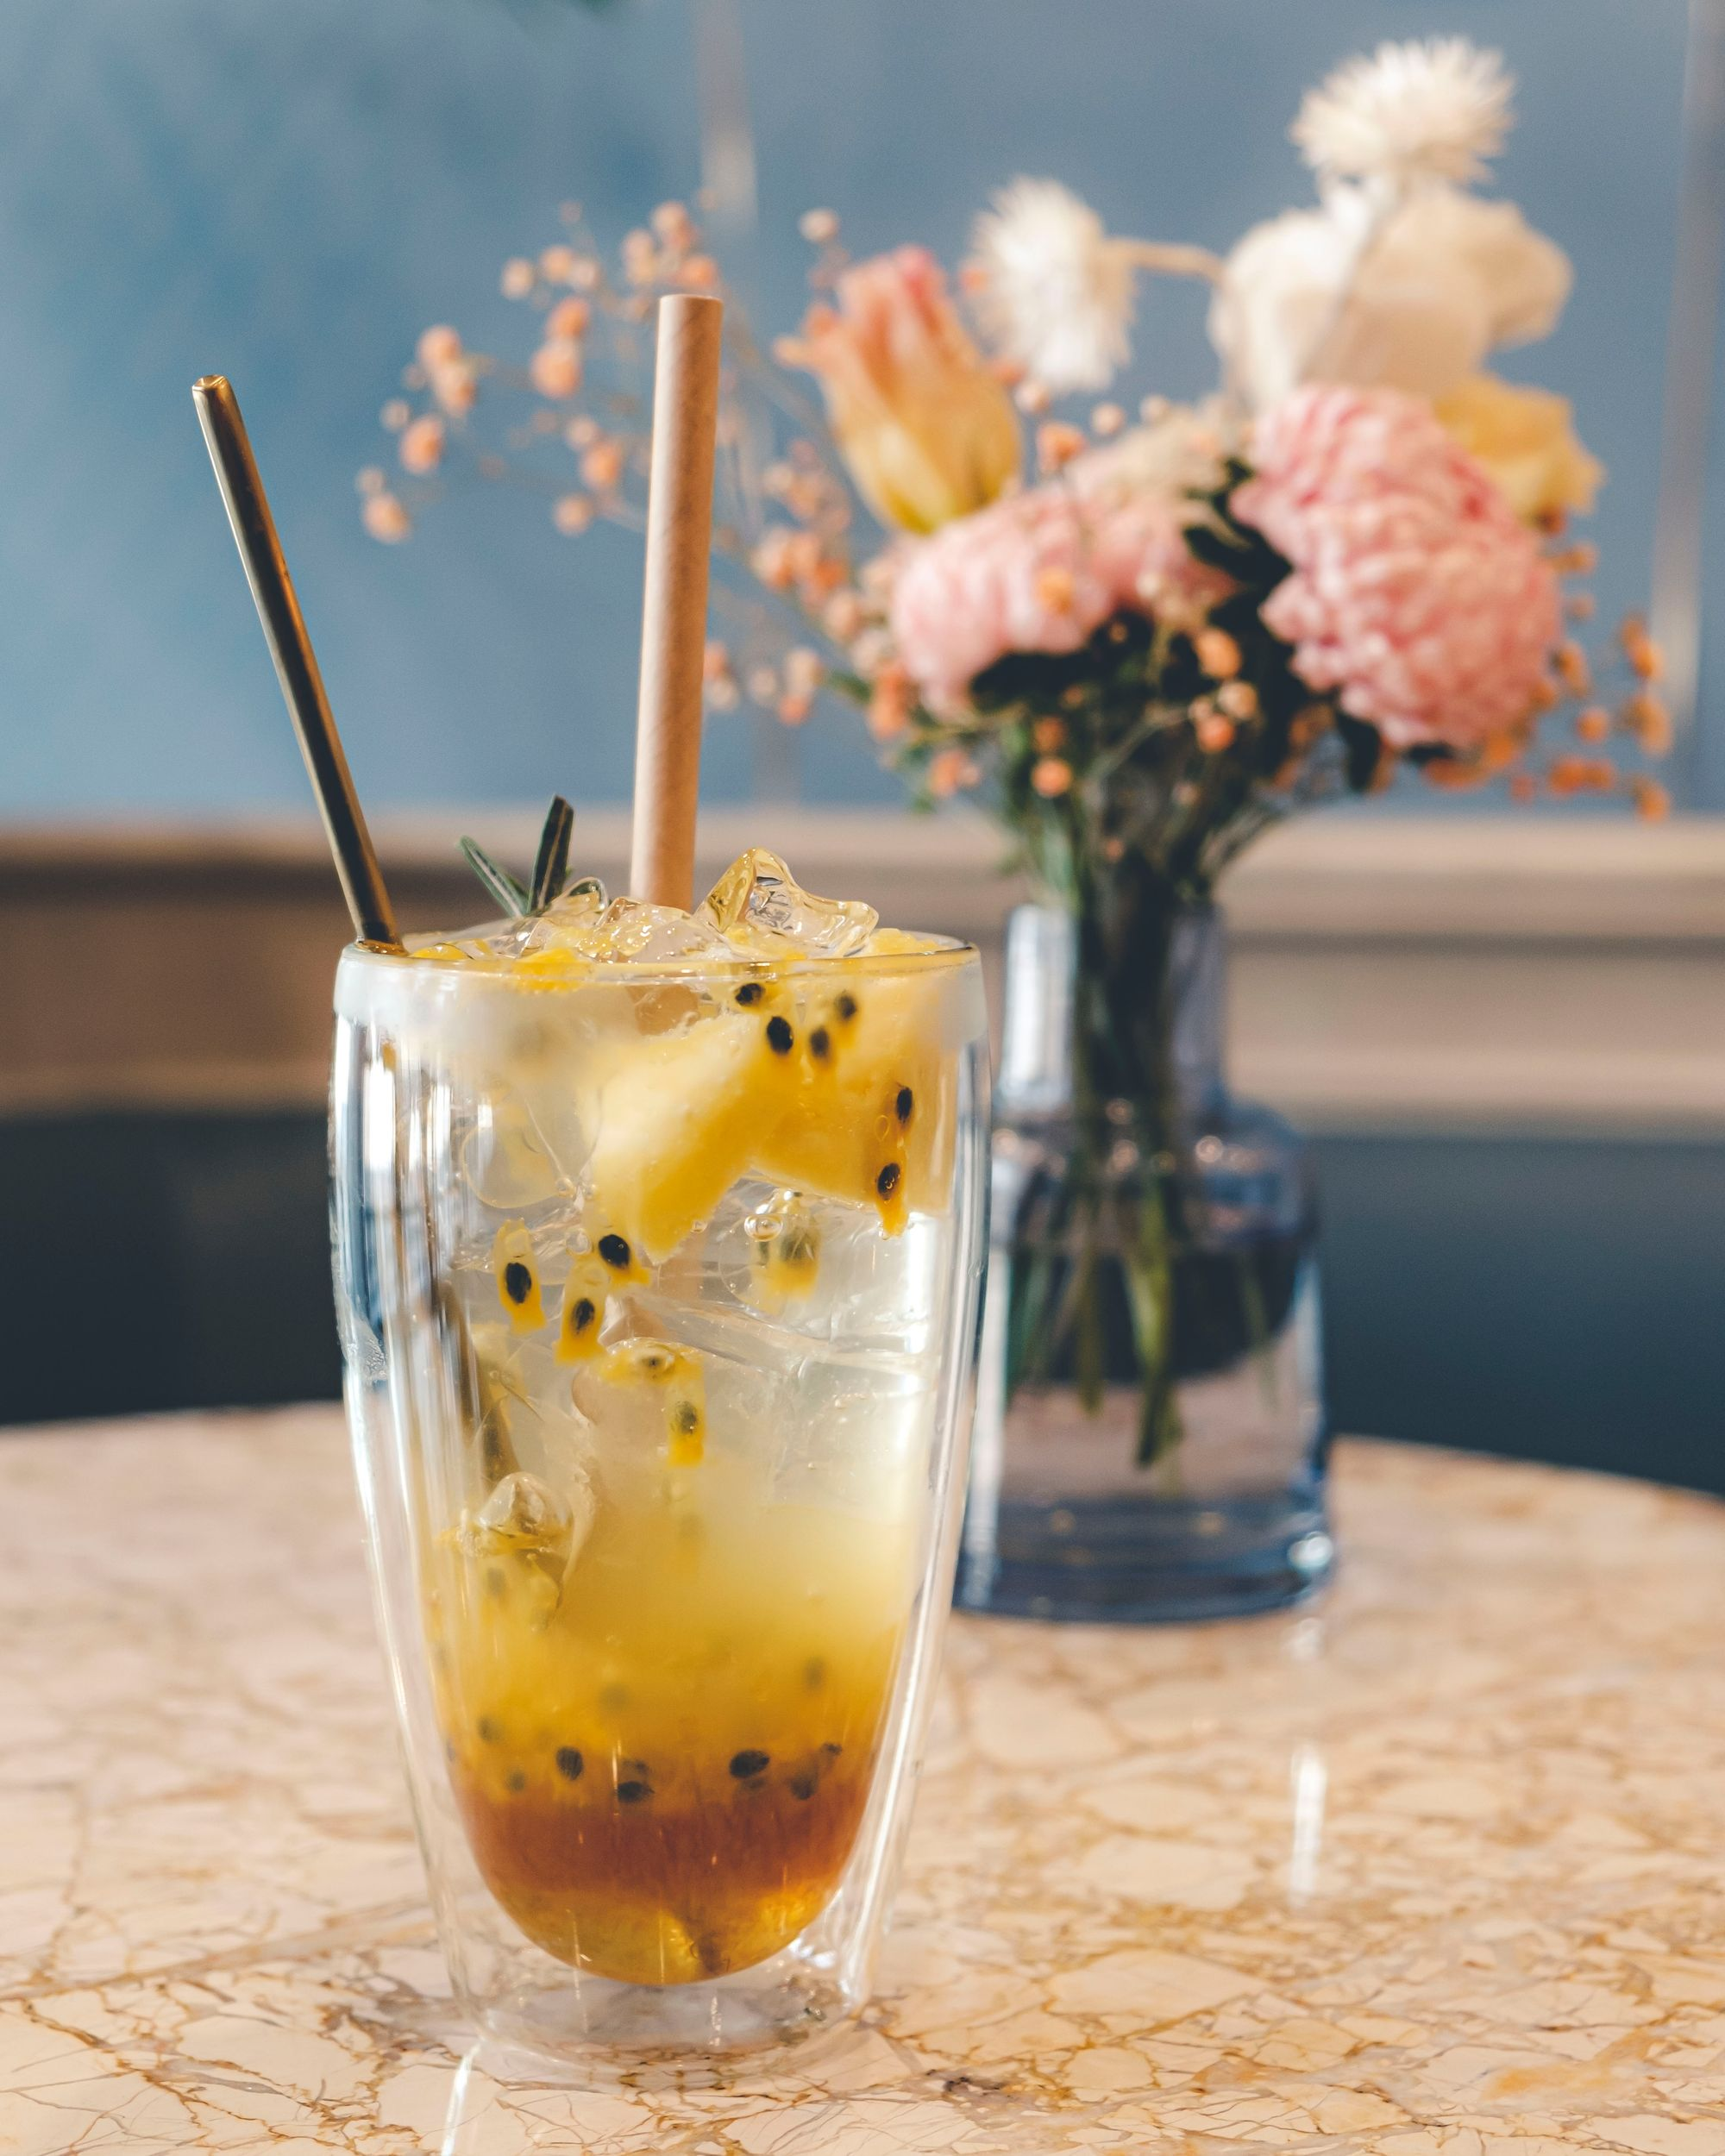 Passionfruit Pineapple Soda